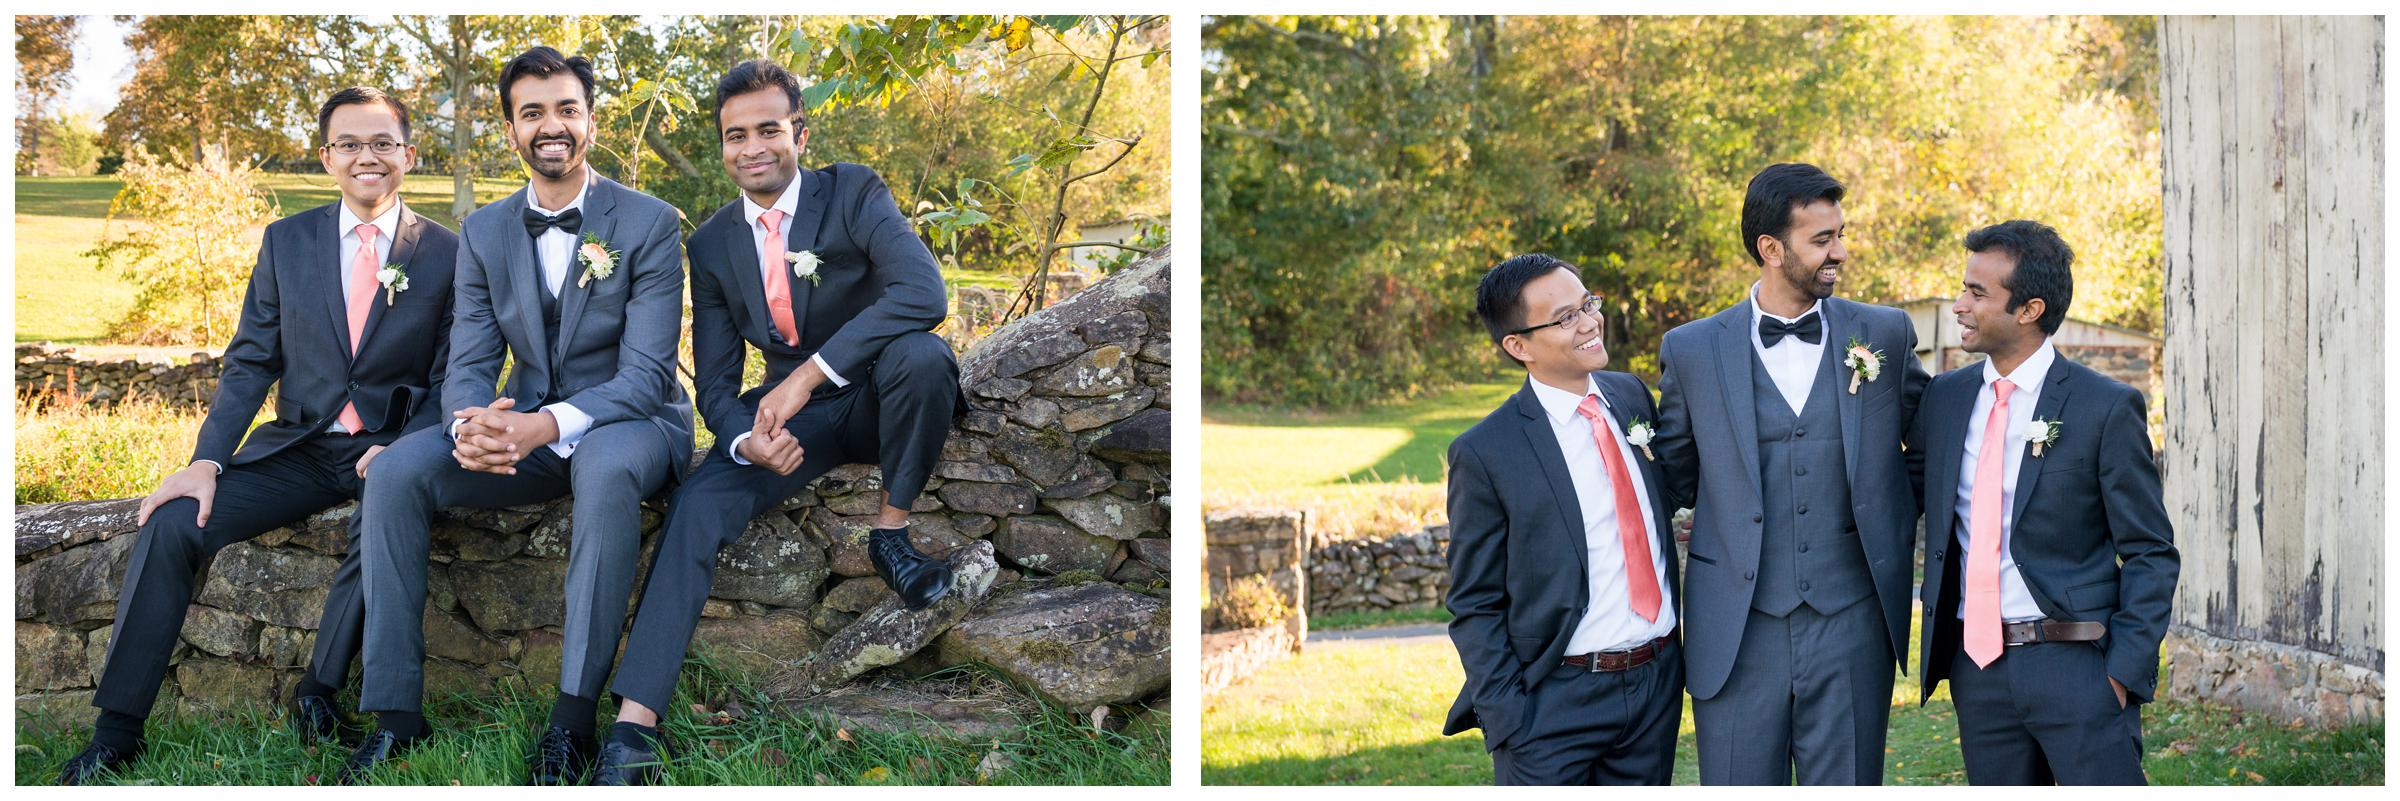 Portrait of groomsmen near stone ruins at rustic wedding.